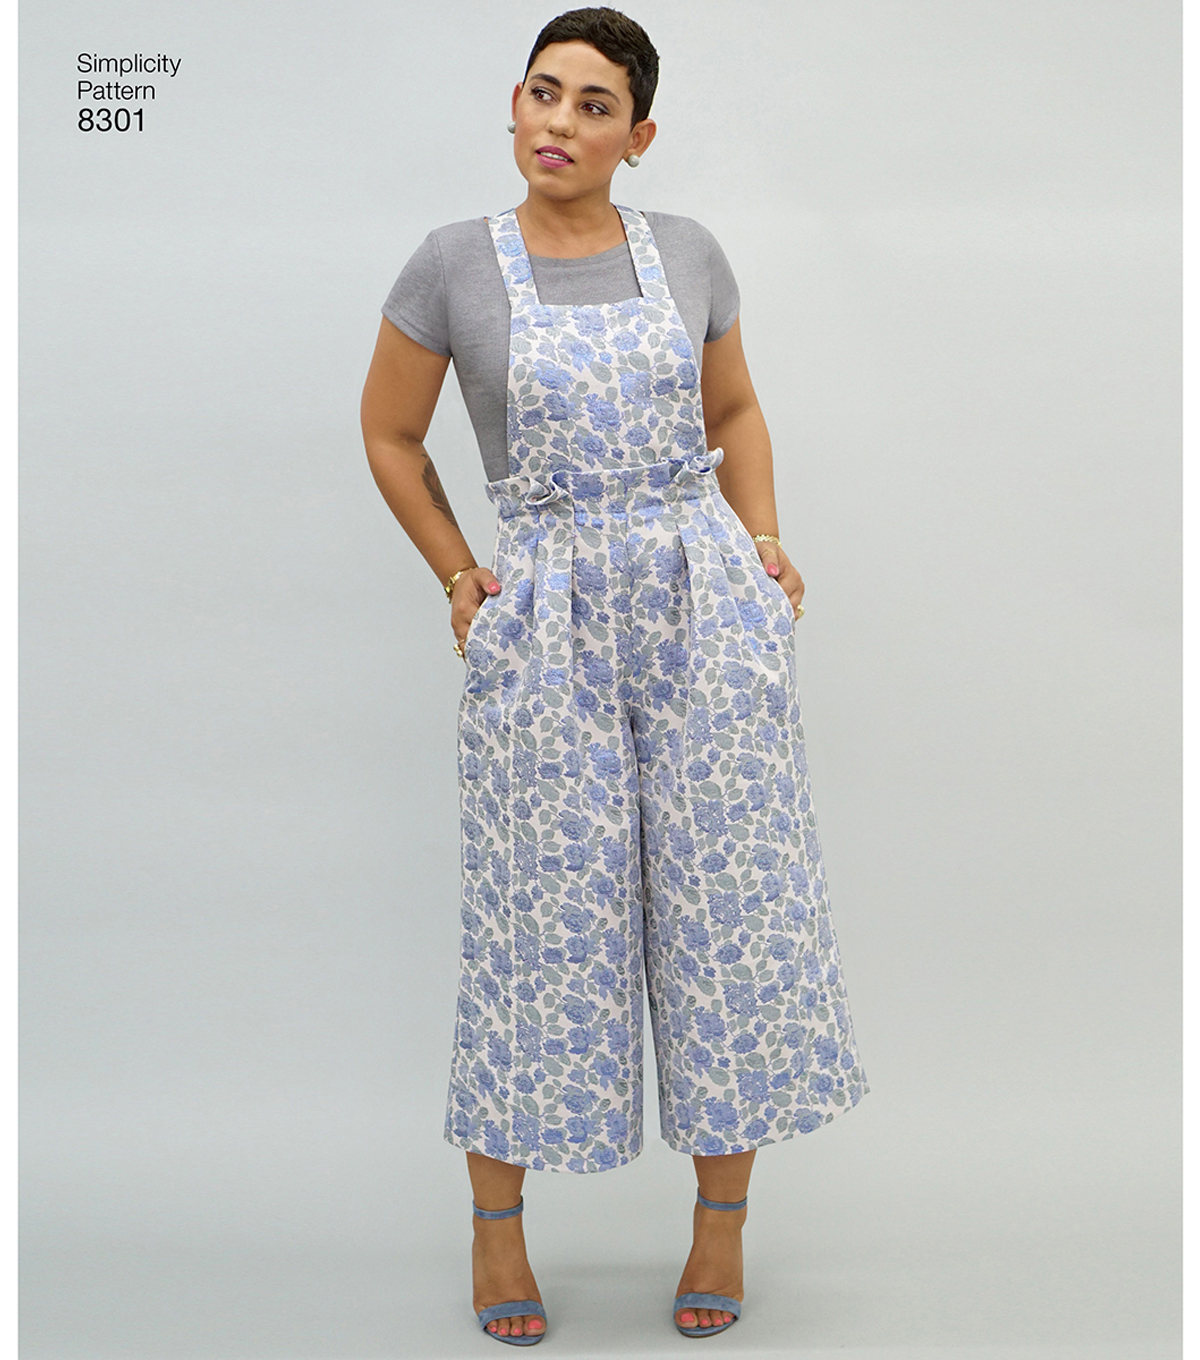 Simplicity Pattern 8301 Misses\u0027 Overalls, Jumper & Top-Size H5 (6-14)